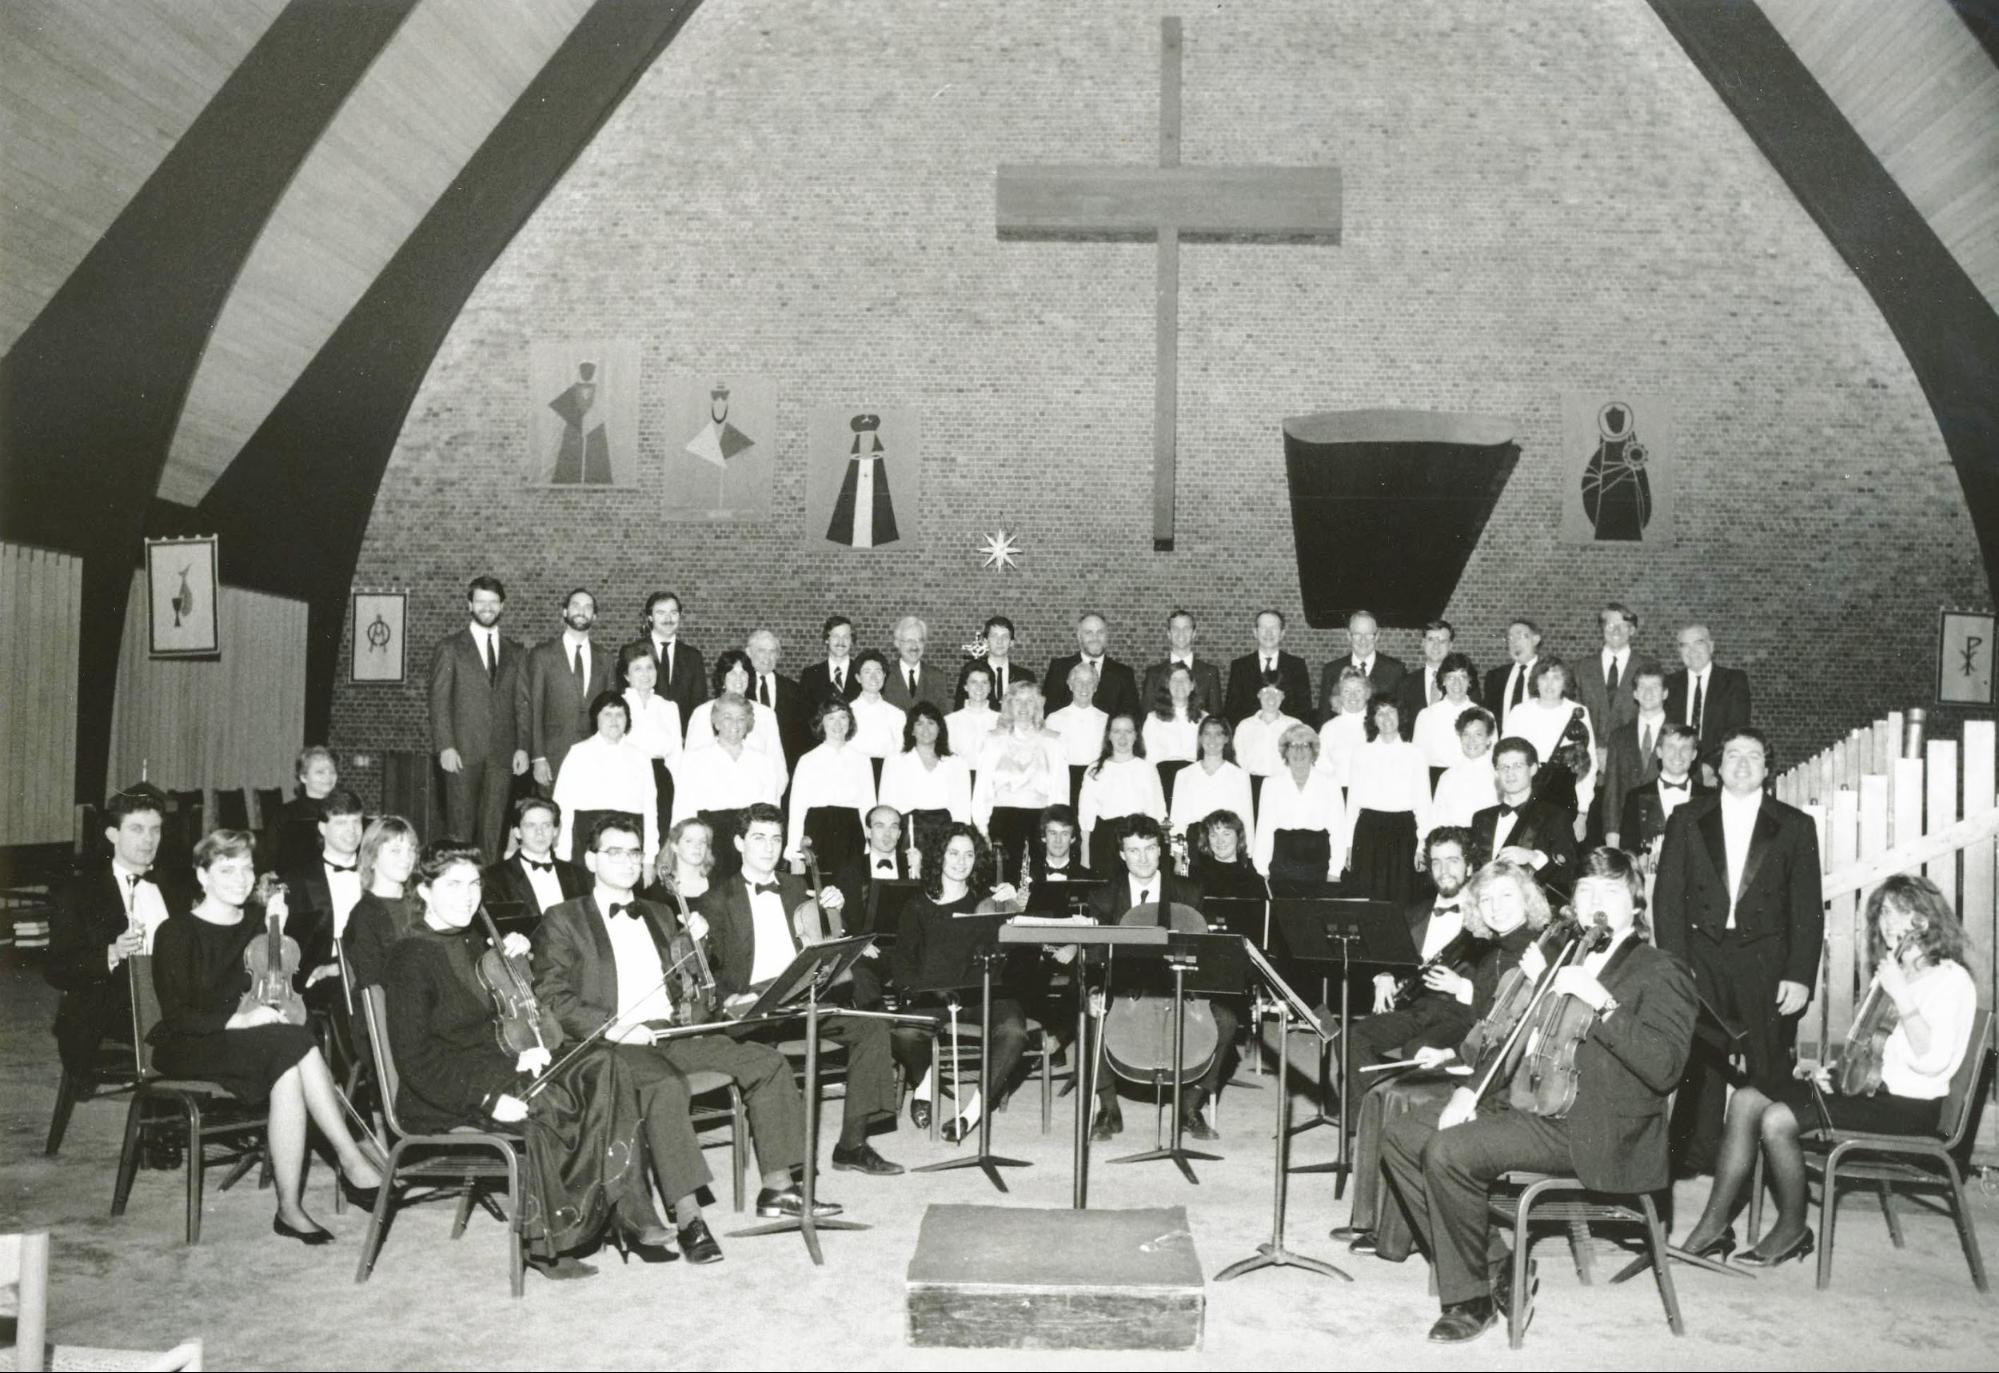 Perhaps the first concert conducted by Gerald Sousa, Dec. 8, 1989.